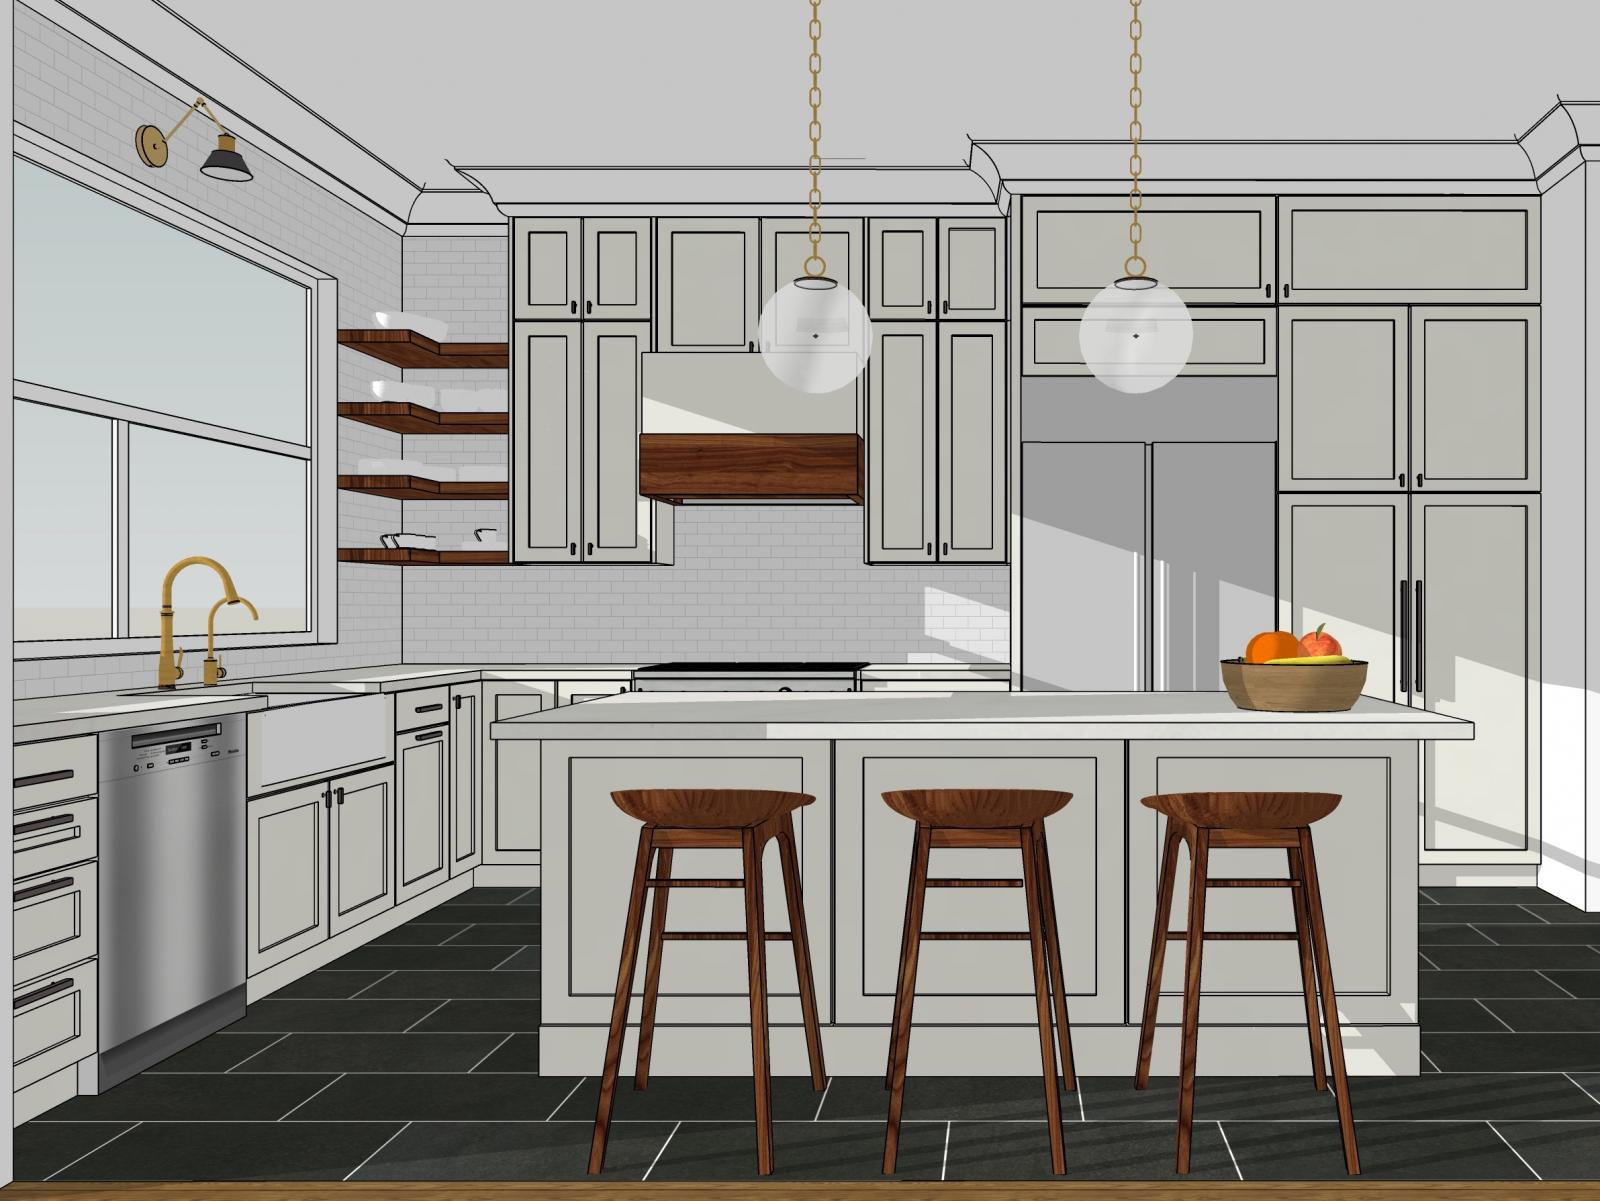 Clean, bright kitchen modeled in SketchUp